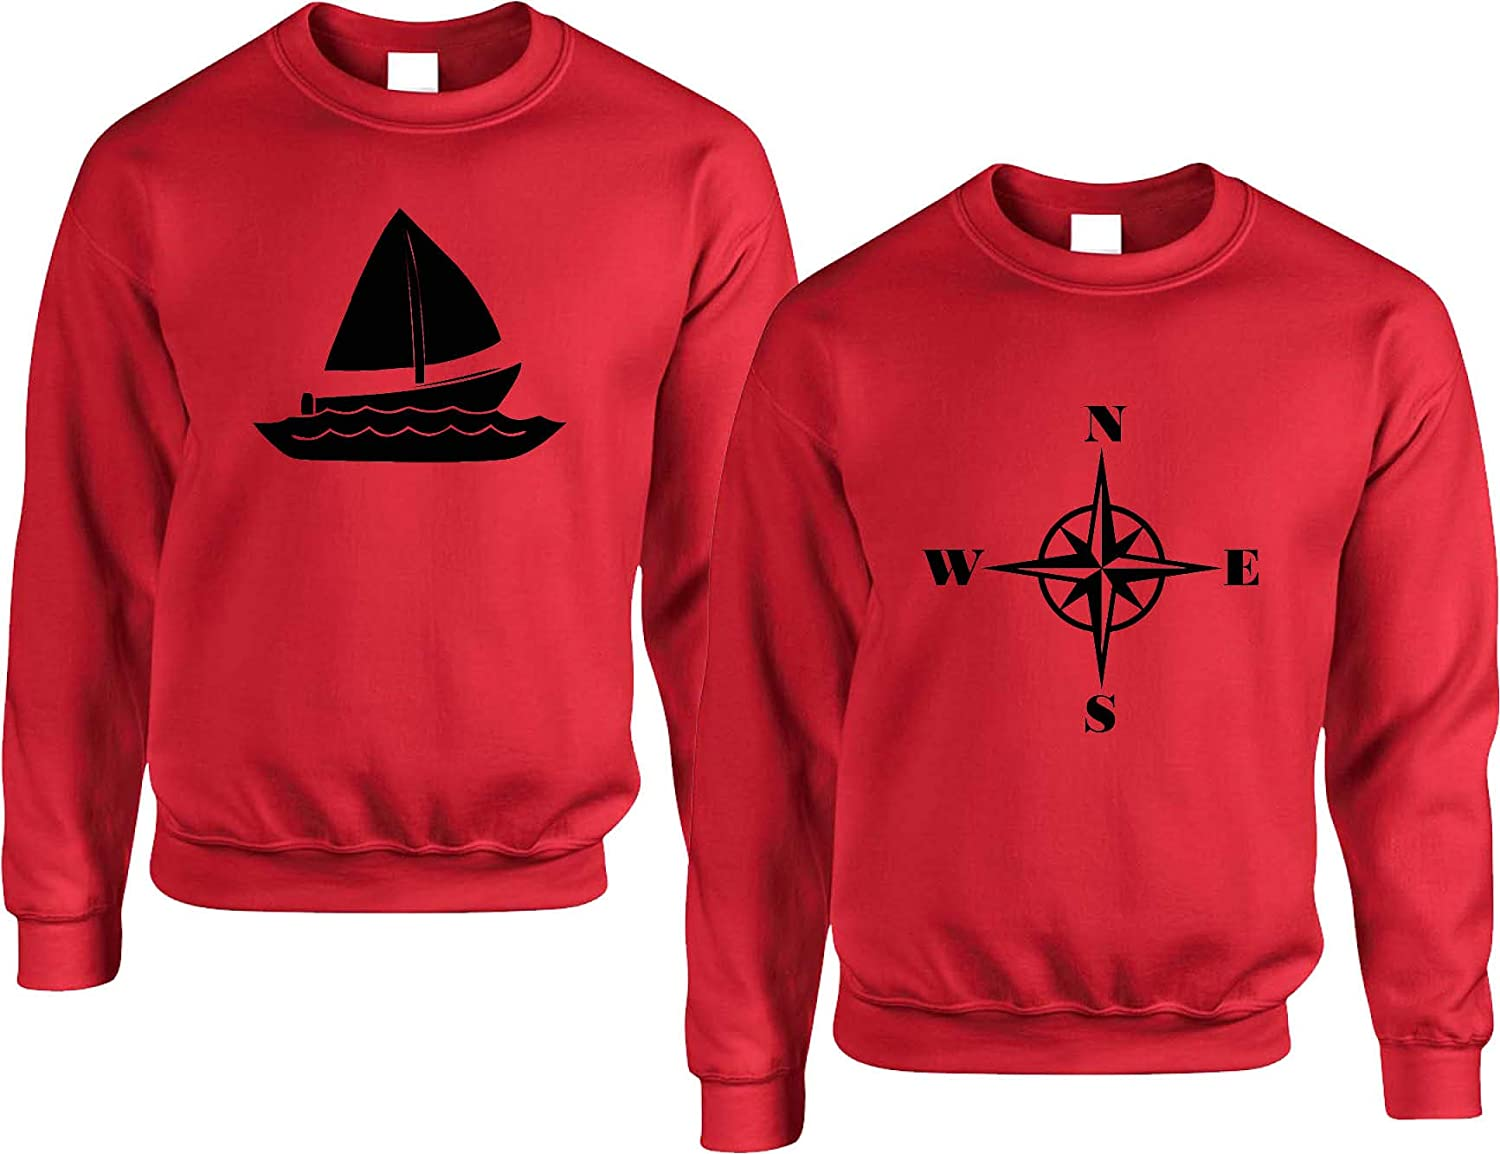 Allntrends Couple Sweatshirt Sailing Boat and Compass Matching Valentines Tops Womens L Mens L, Red